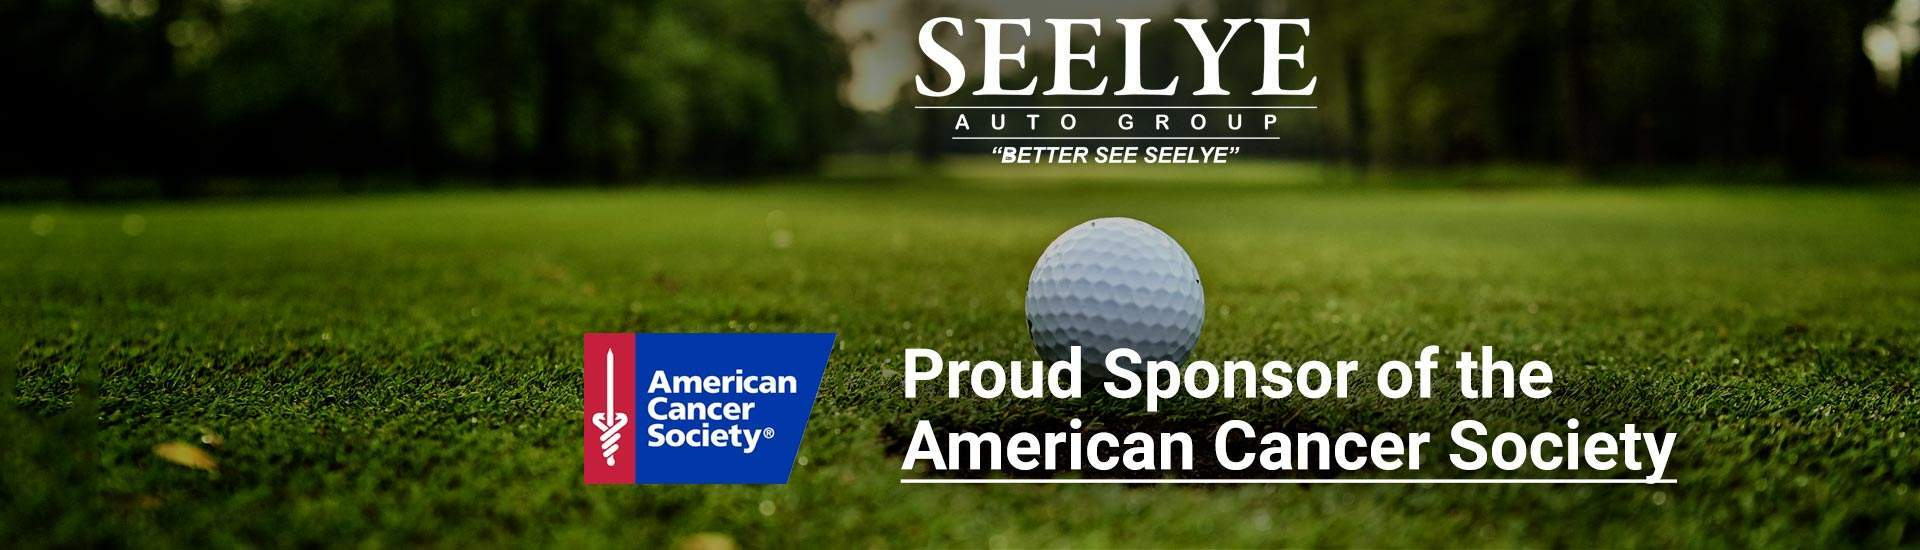 Seelye American Cancer Society Sponsor Slide